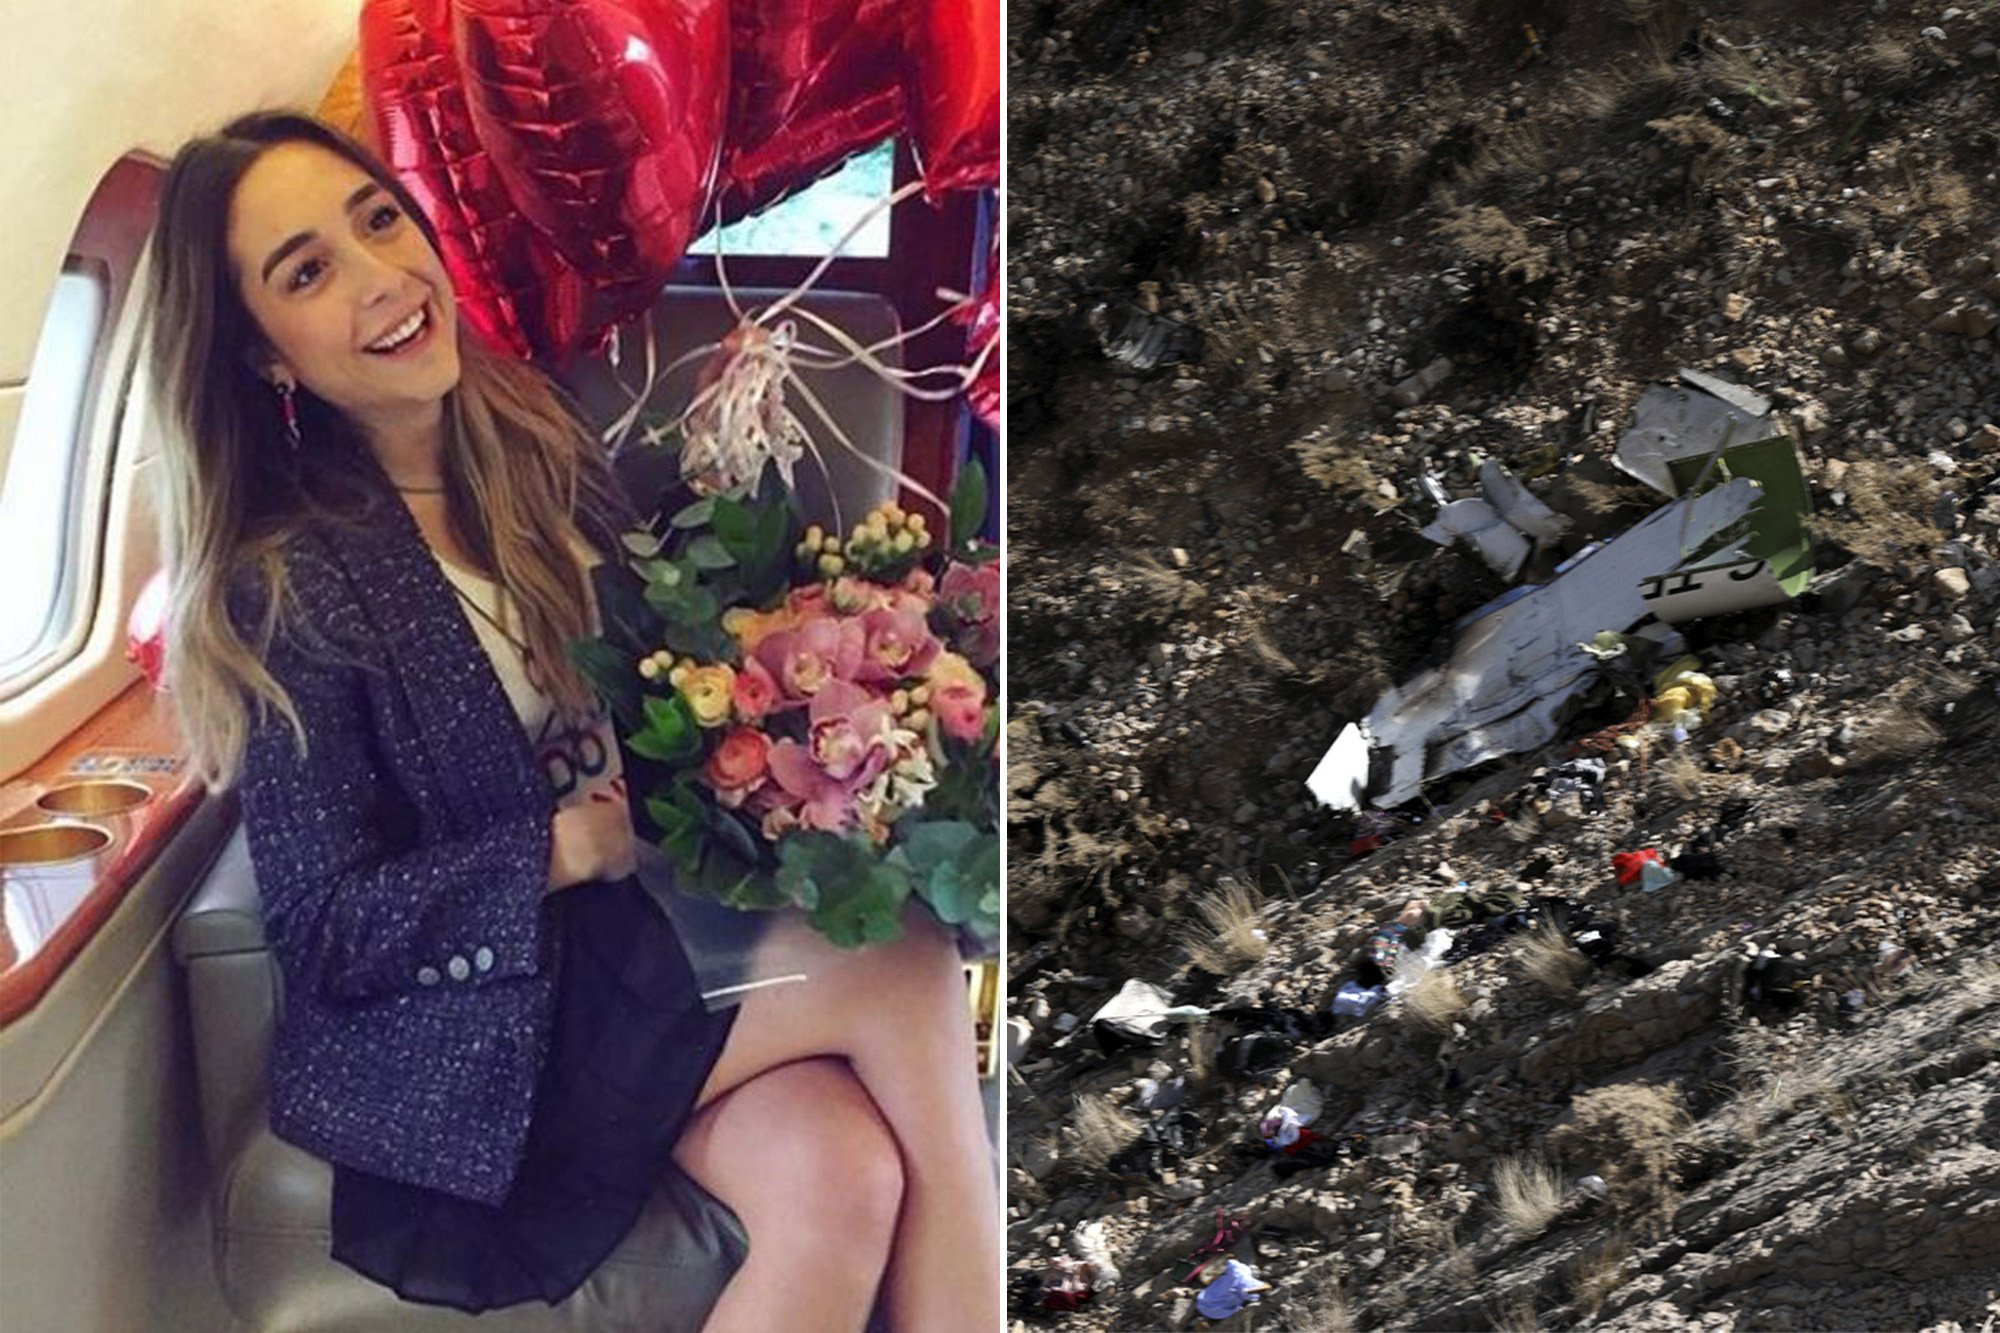 Private plane carrying bachelorette party crashes, killing all on board